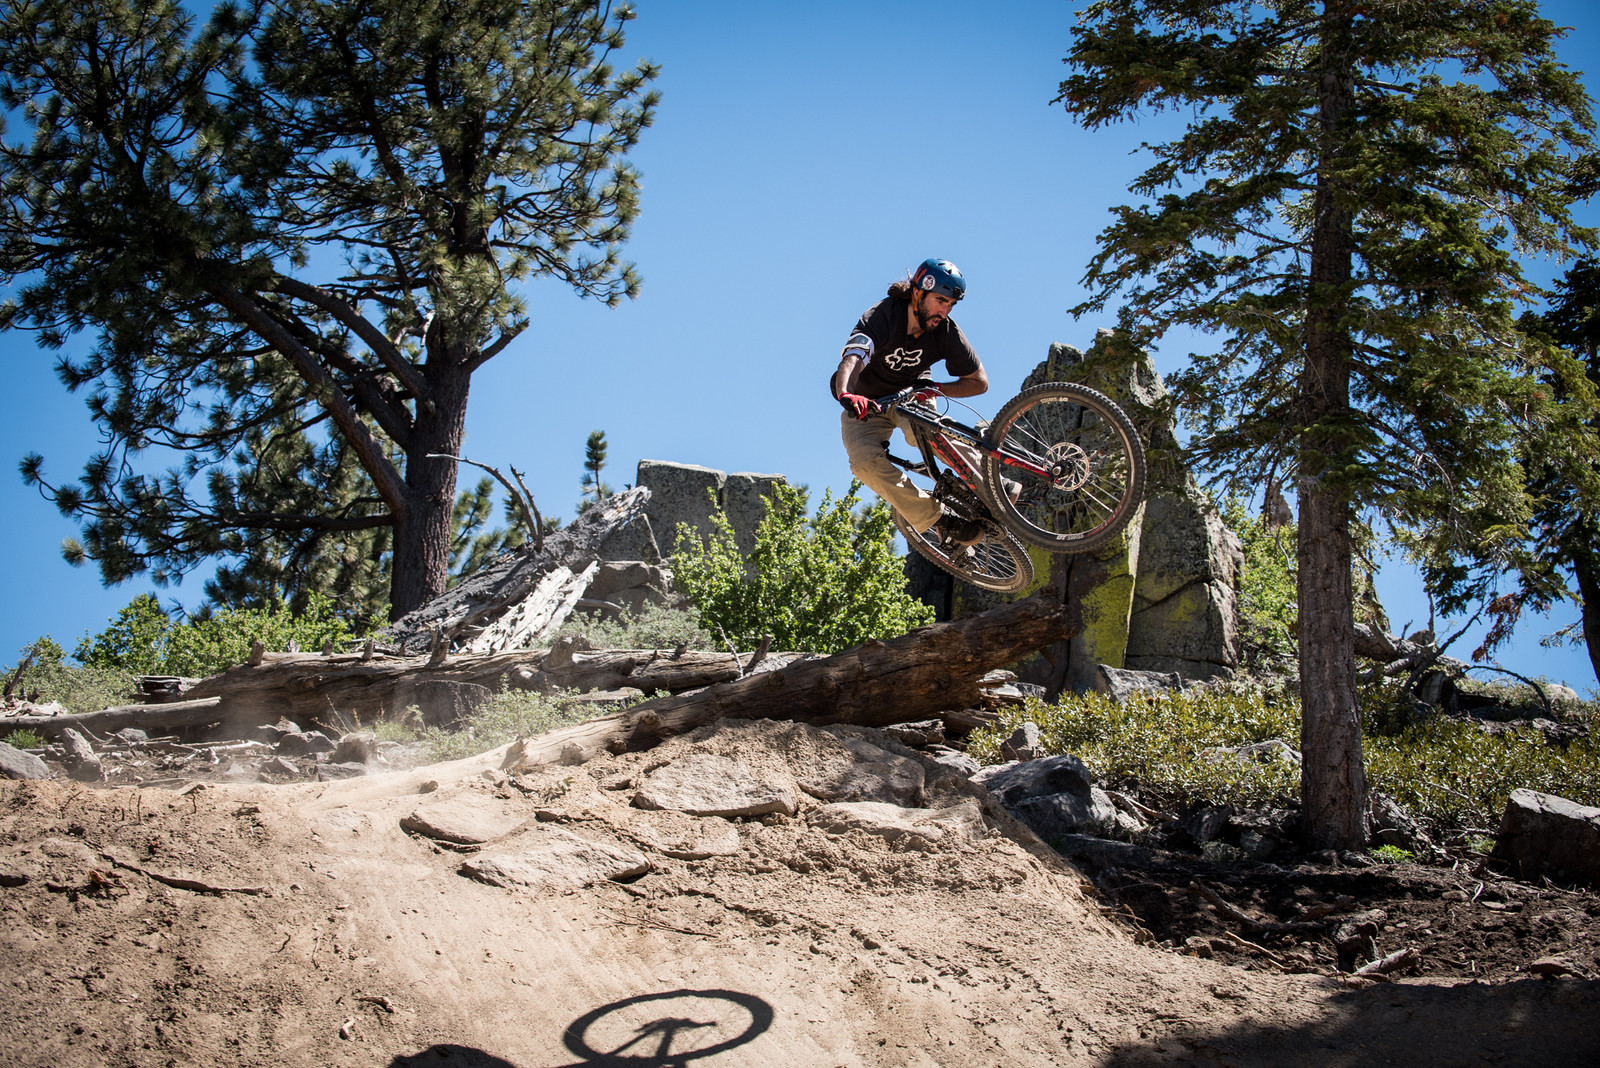 Style for Miles - Vital Ditch Day 2017 at Snow Summit Bike Park - Mountain Biking Pictures - Vital MTB